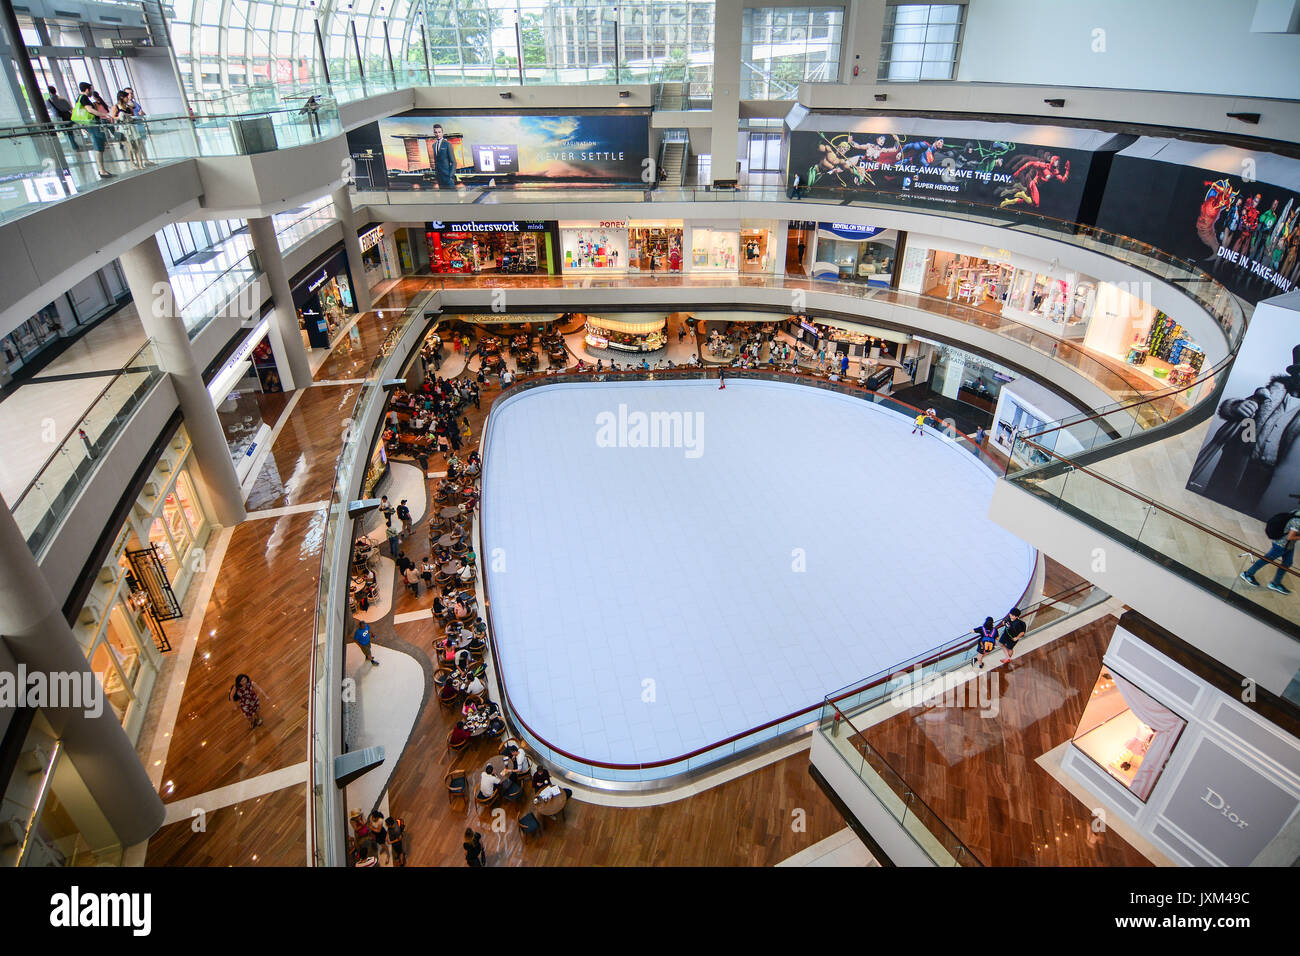 Singapore - Jul 3, 2015. Interior of the Shoppes at Marina Bay Sands in Singapore. Singapore has a highly developed and successful free-market economy - Stock Image